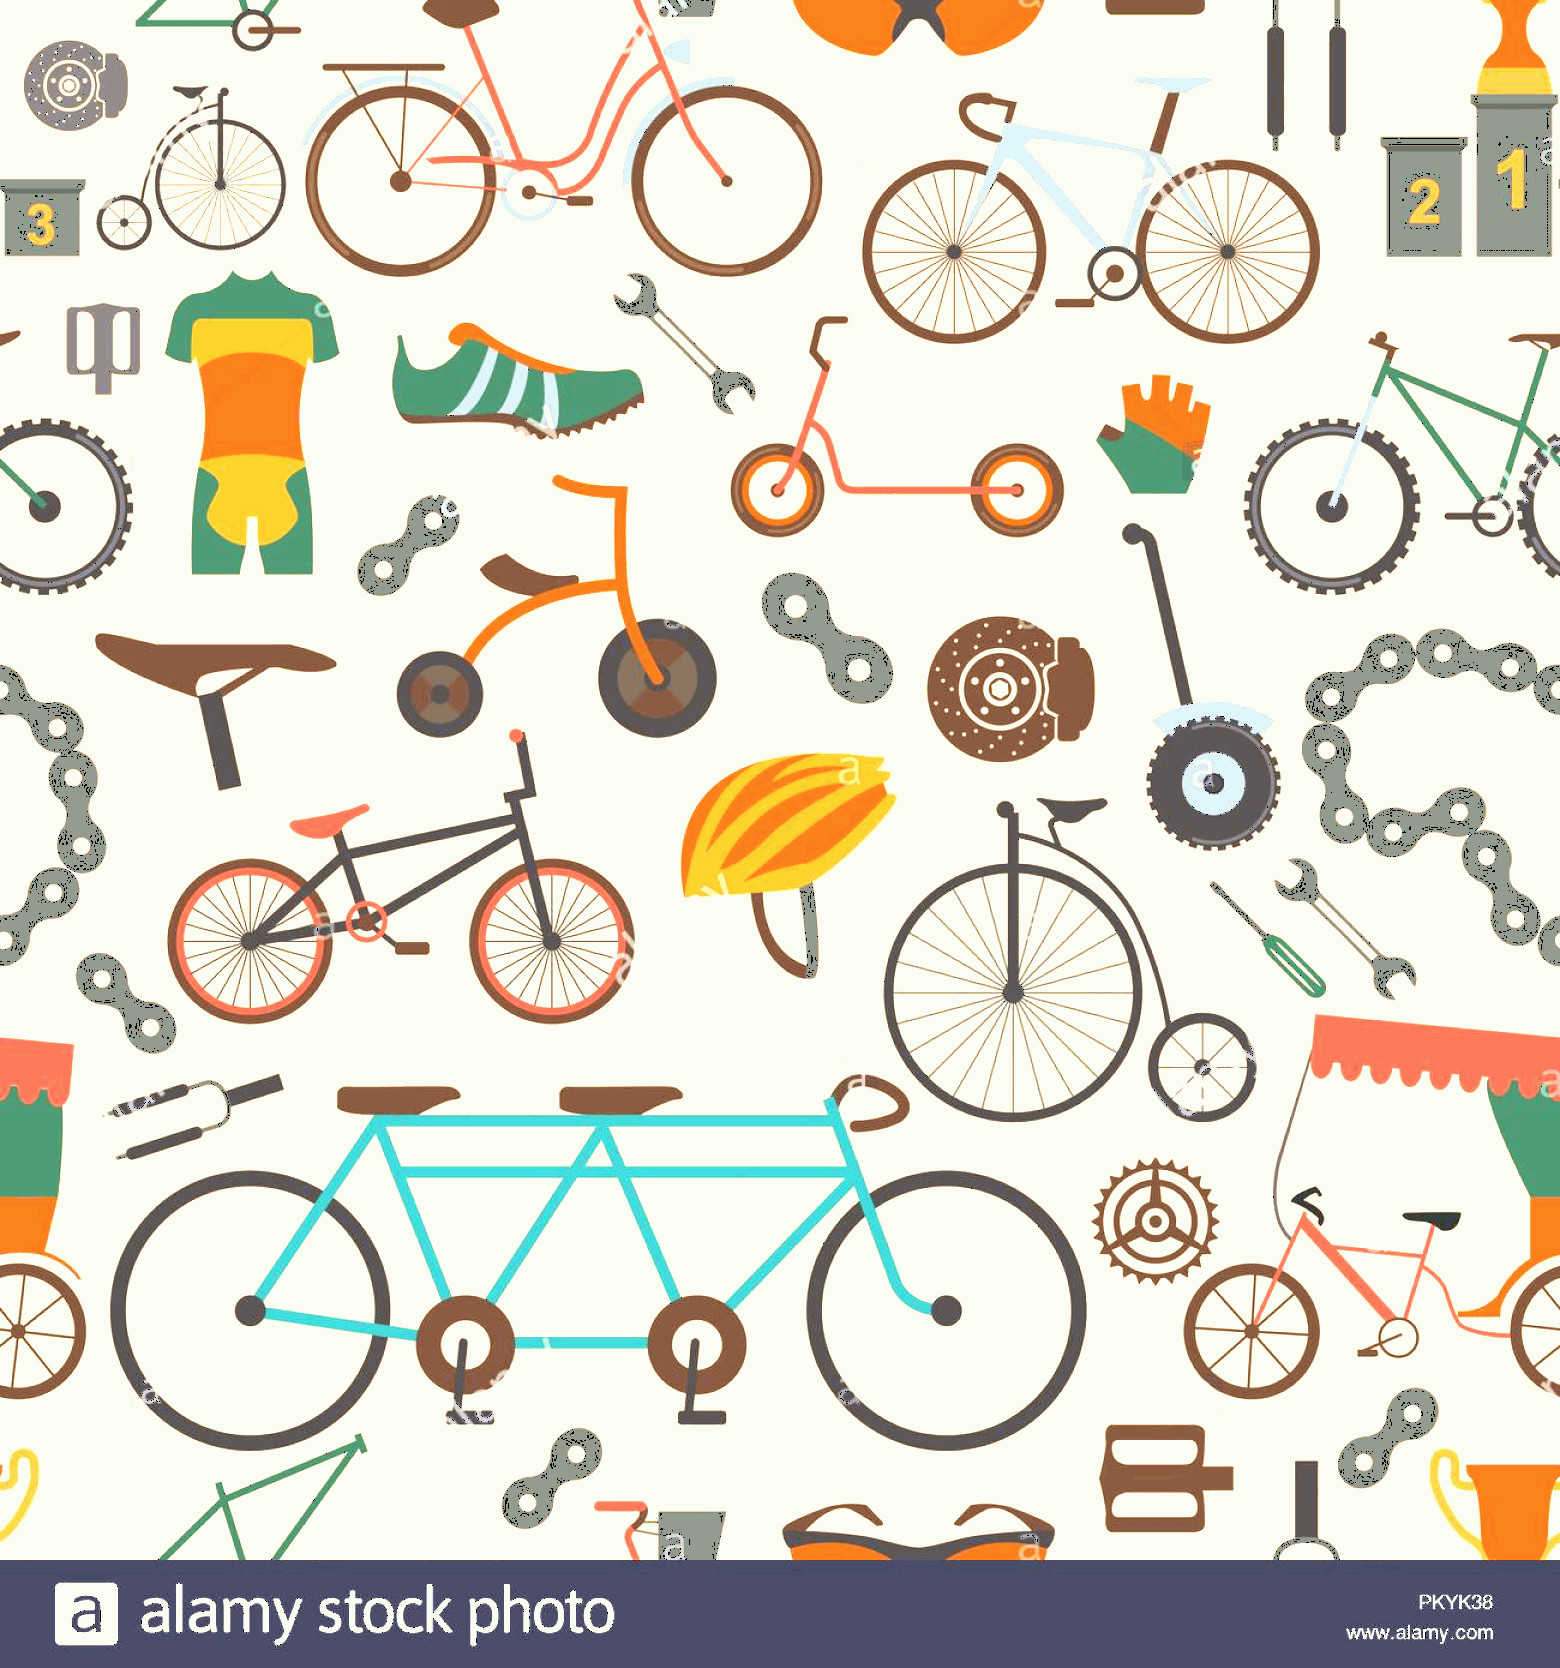 Bicycle Vector Artwork Of Patterns: Bicycle Seamless Pattern Colour Flat Design Vector Illustration Image